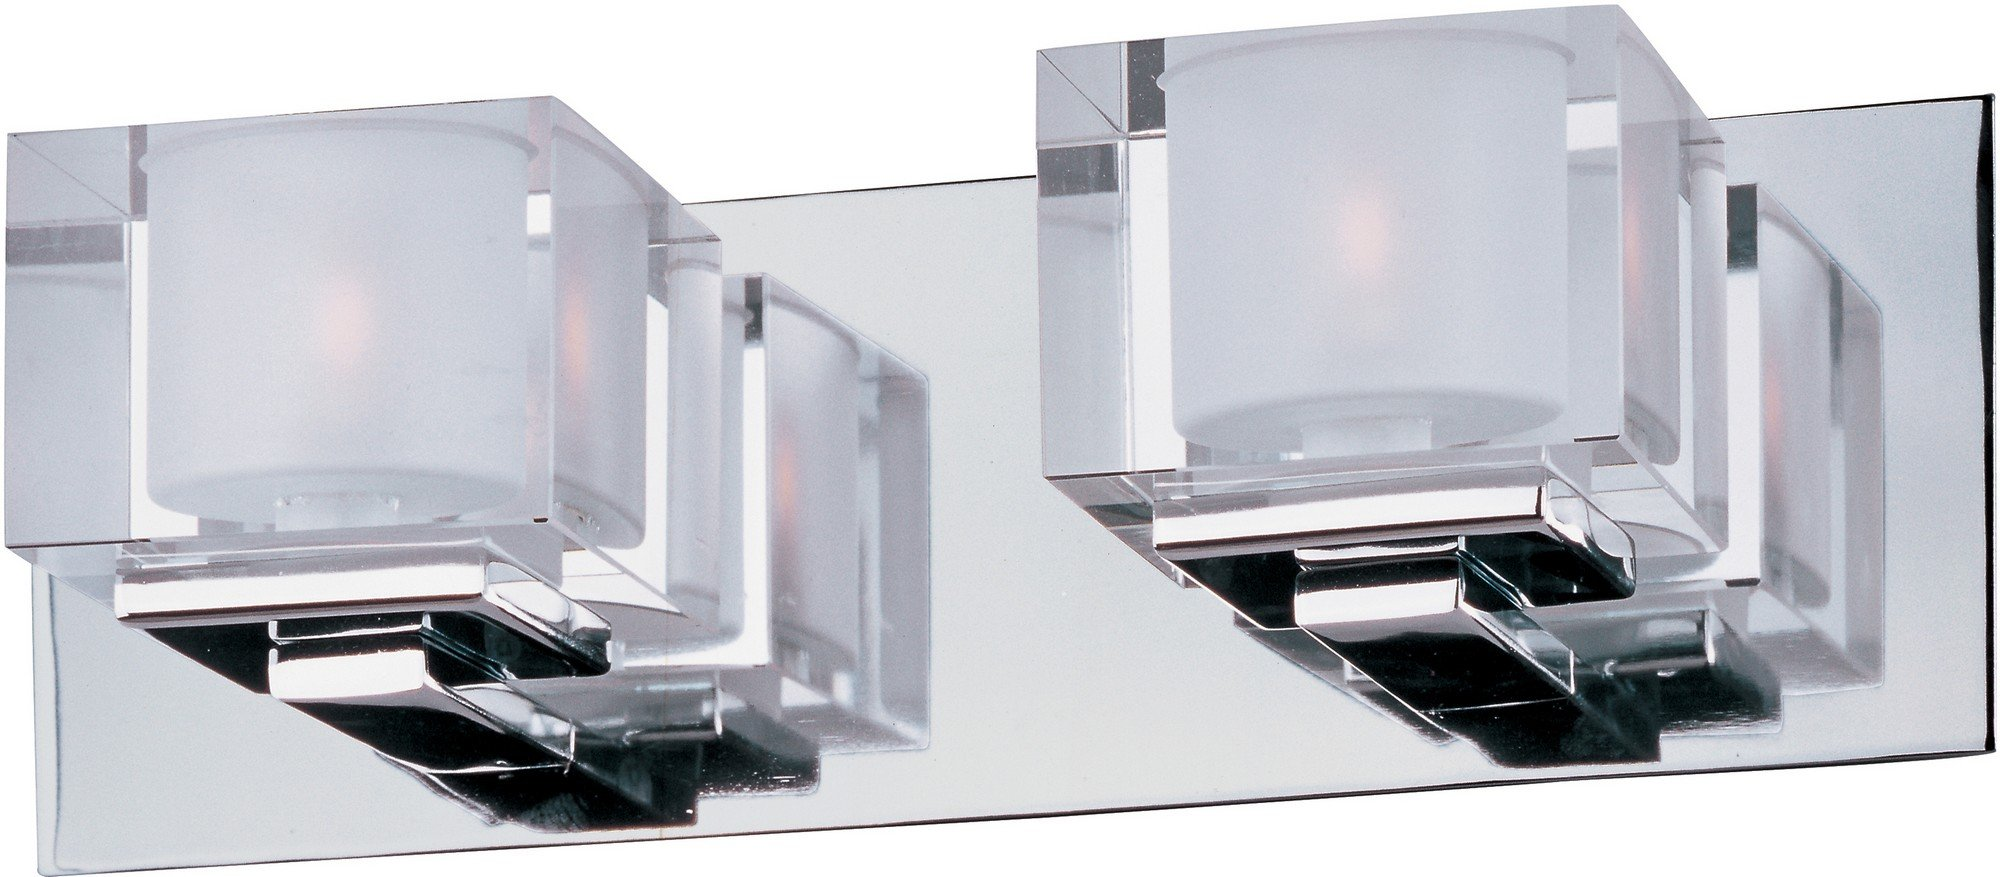 Maxim 10002CLPC Cubic 2-Light Bath Vanity, Polished Chrome Finish, Clear Glass, G9 Xenon Xenon Bulb , 100W Max., Damp Safety Rating, Standard Dimmable, Glass Shade Material, 1150 Rated Lumens